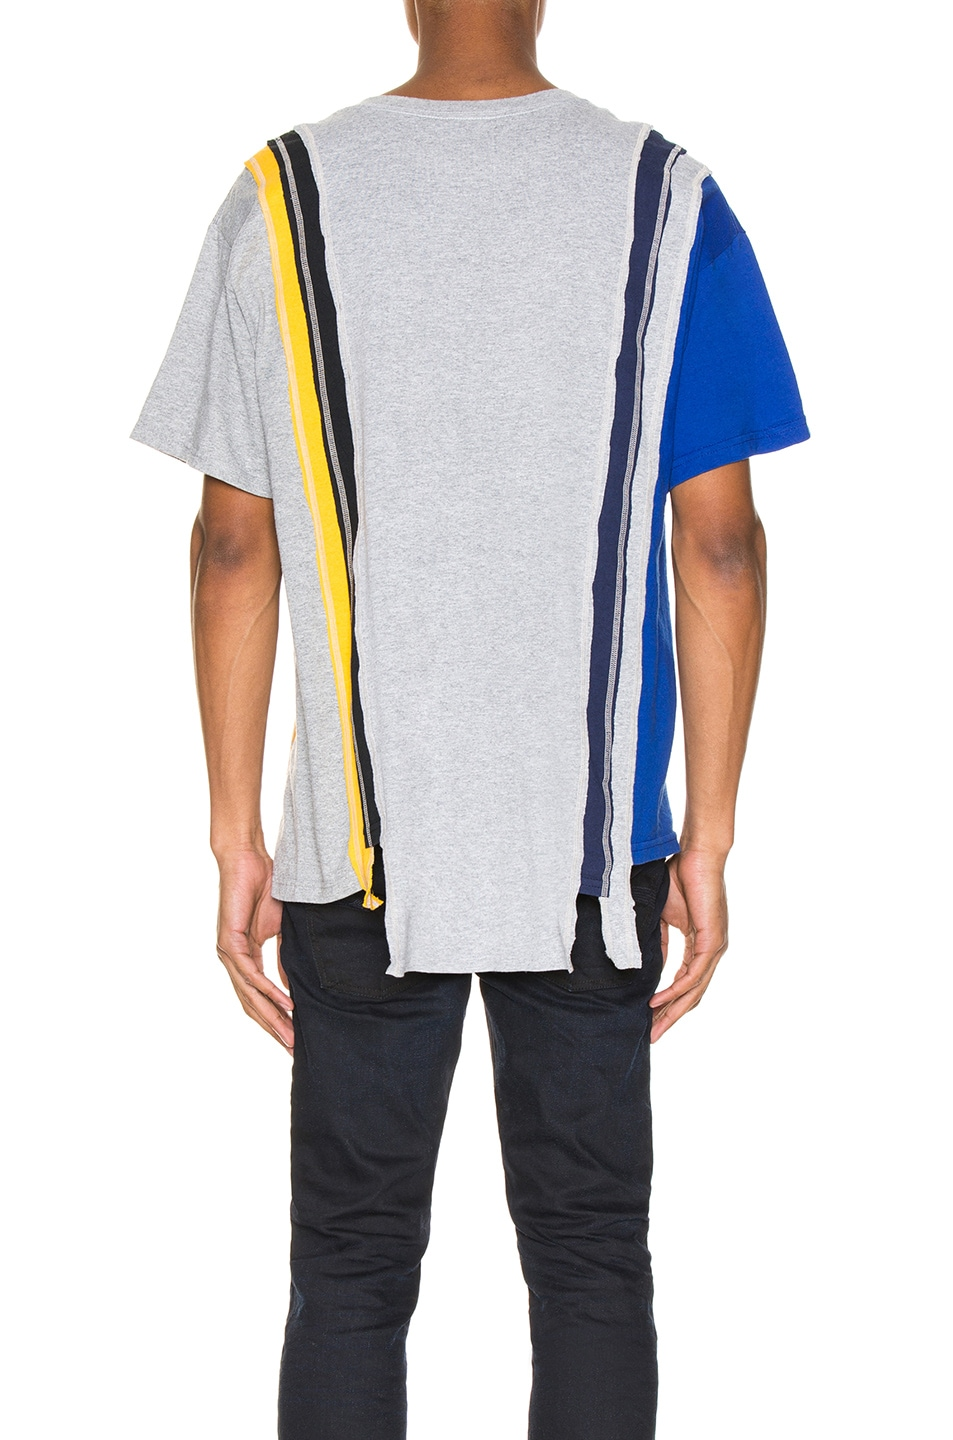 Image 4 of Needles 7 Cuts Wide College S/S Tee in Assorted